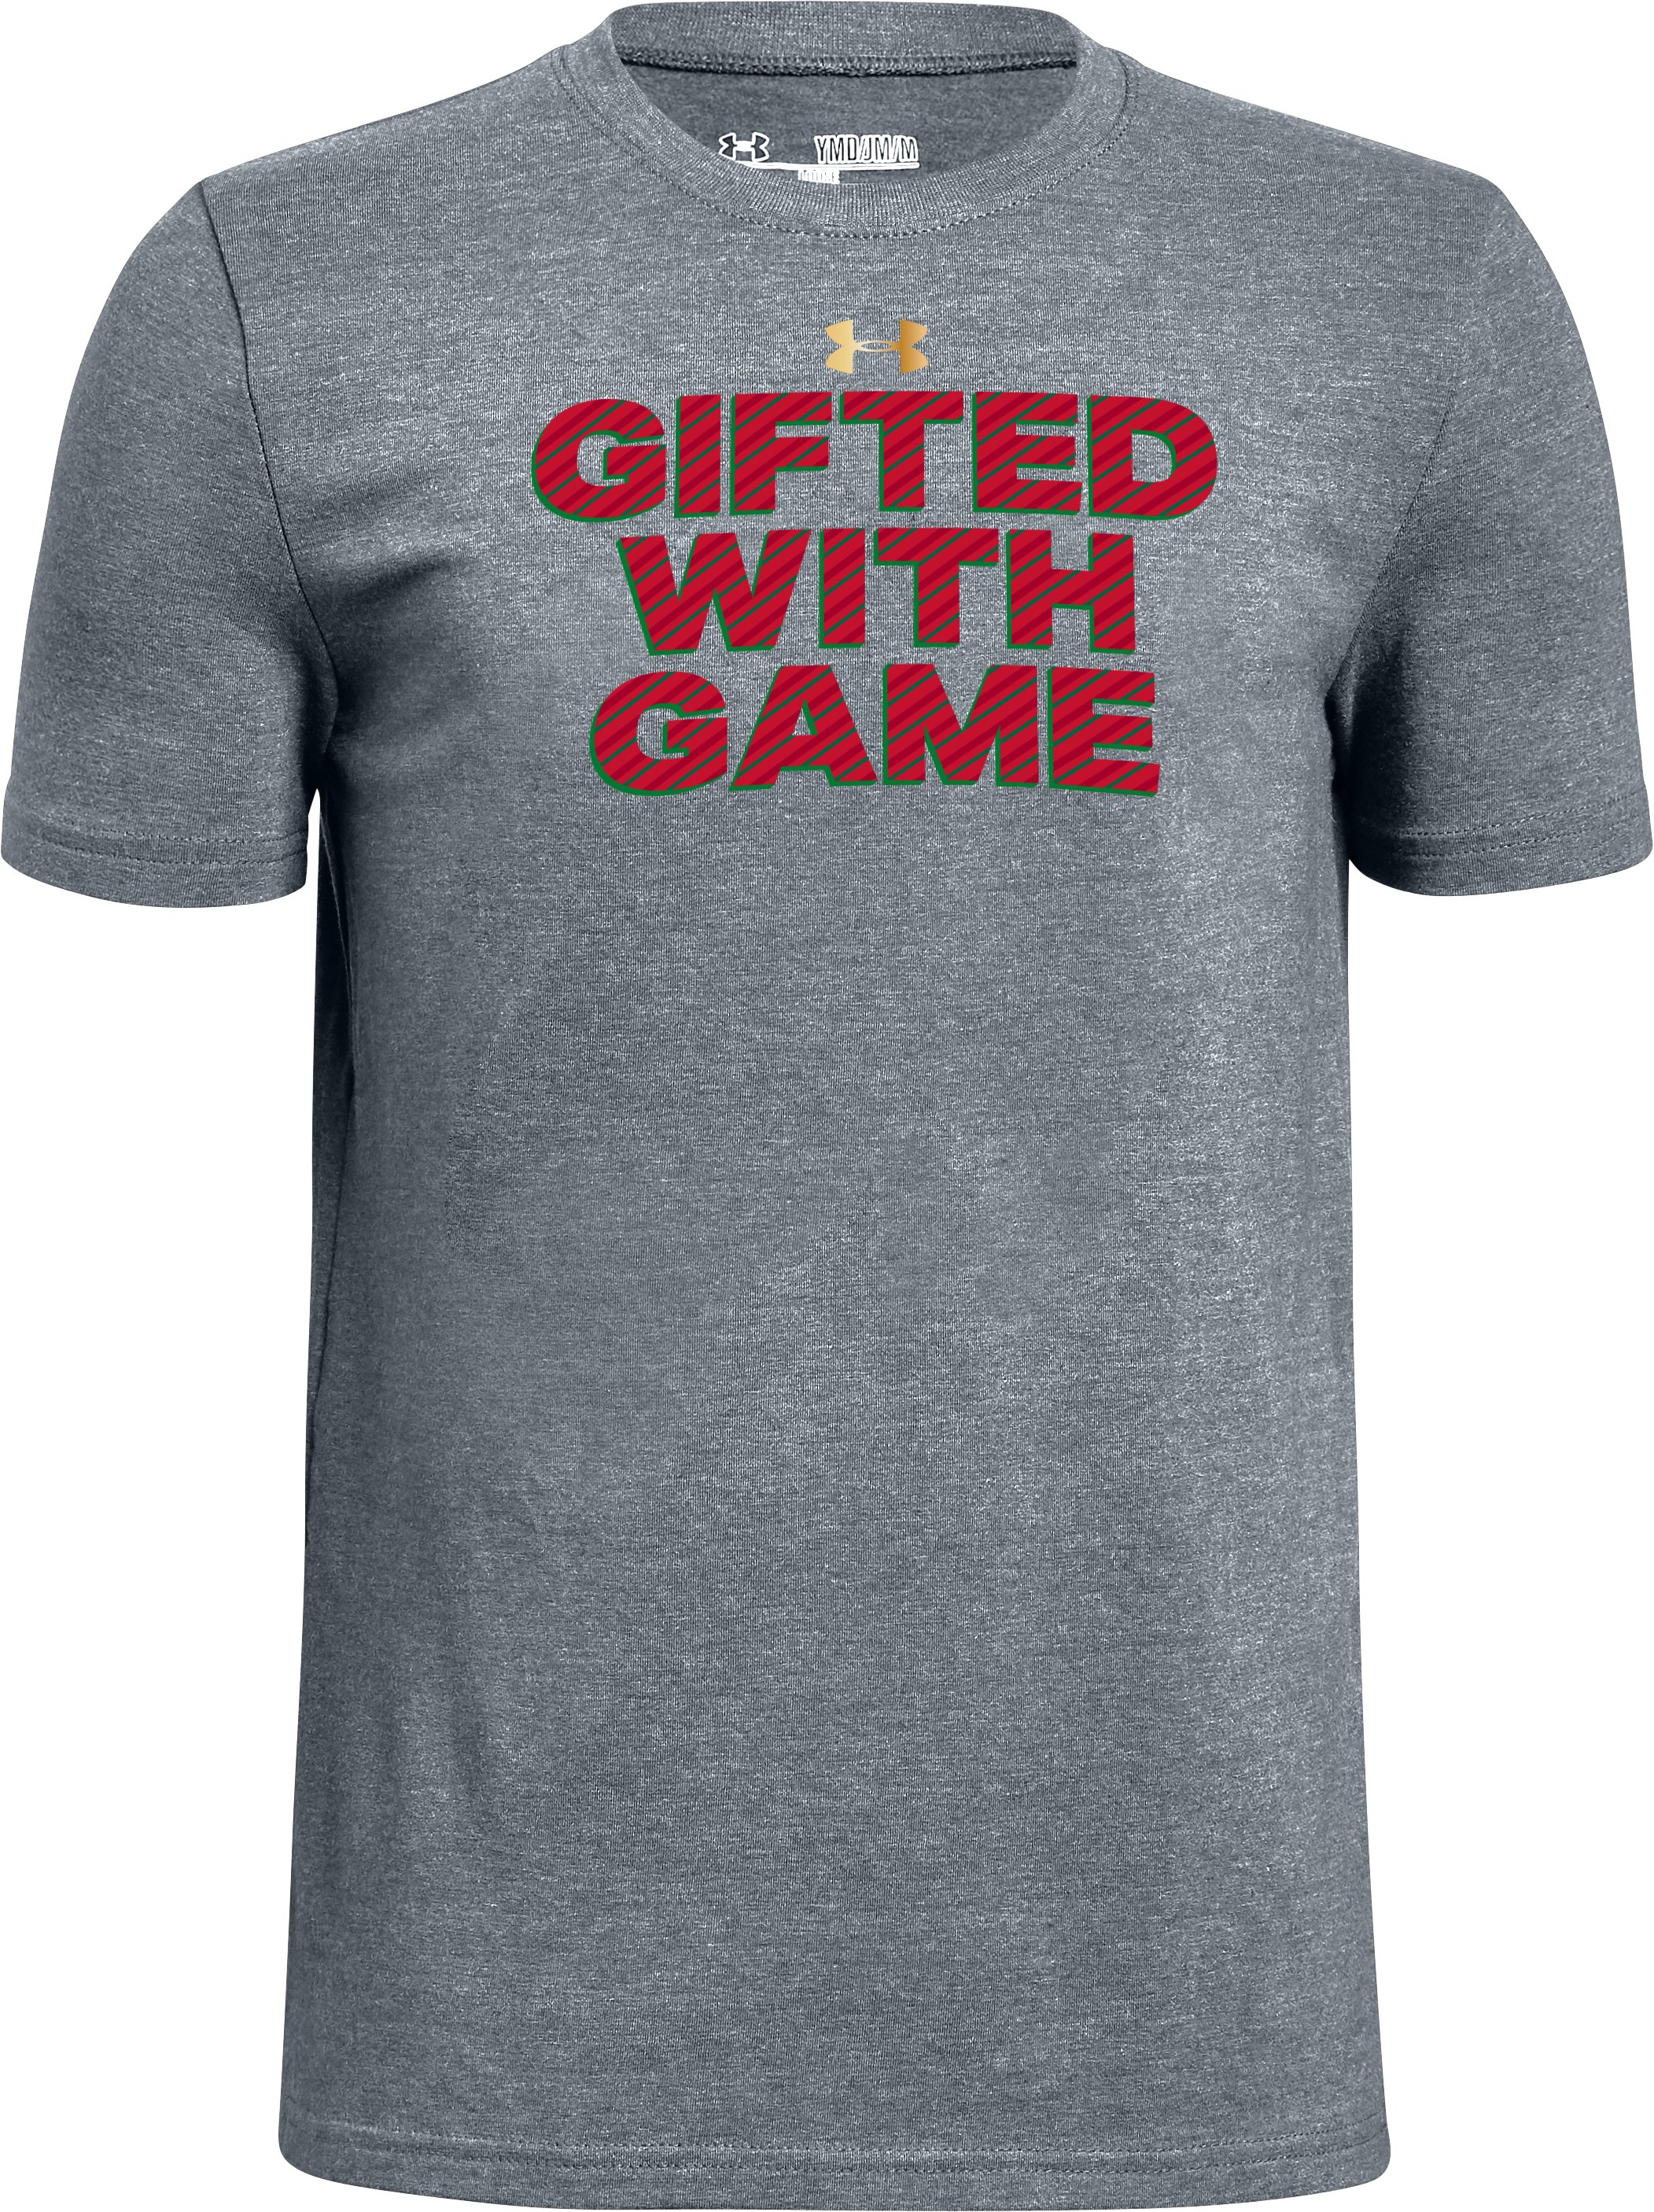 Boys' UA Gifted With Game Graphic T-Shirt, STEEL LIGHT HEATHER,